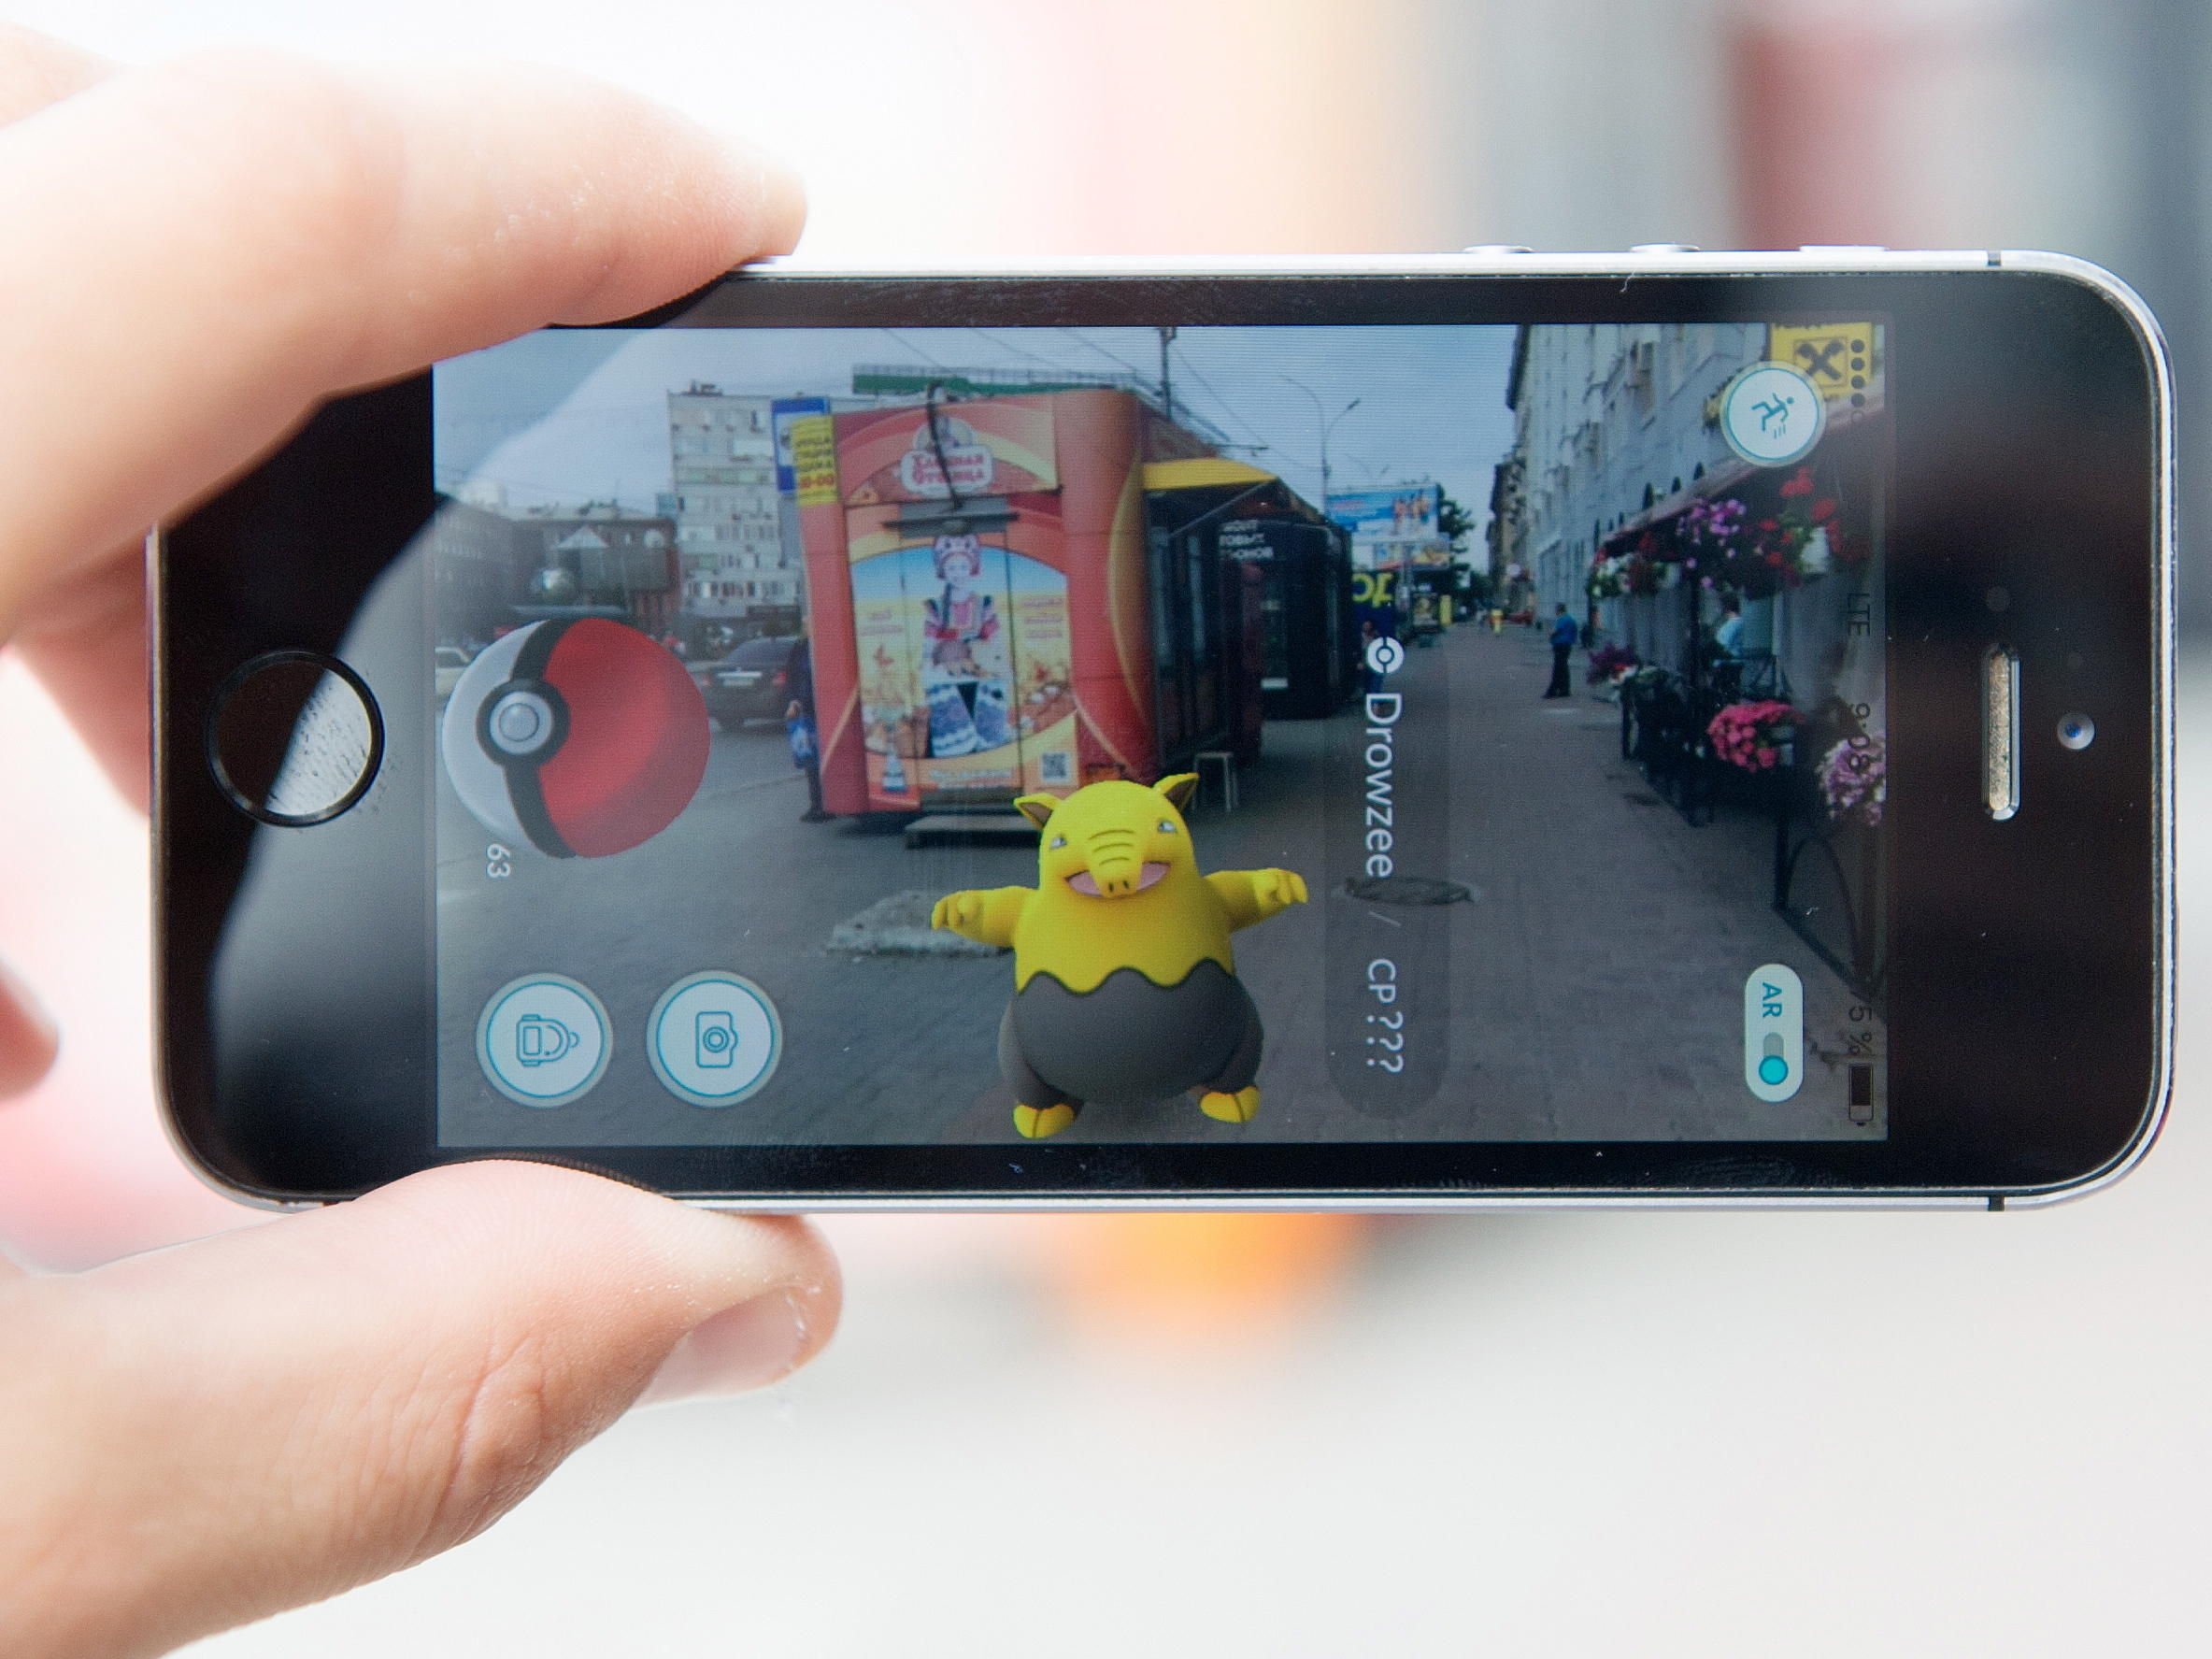 Caught Up In Anti-Putin Arrests, Pokemon Go Players Sent To Pokey